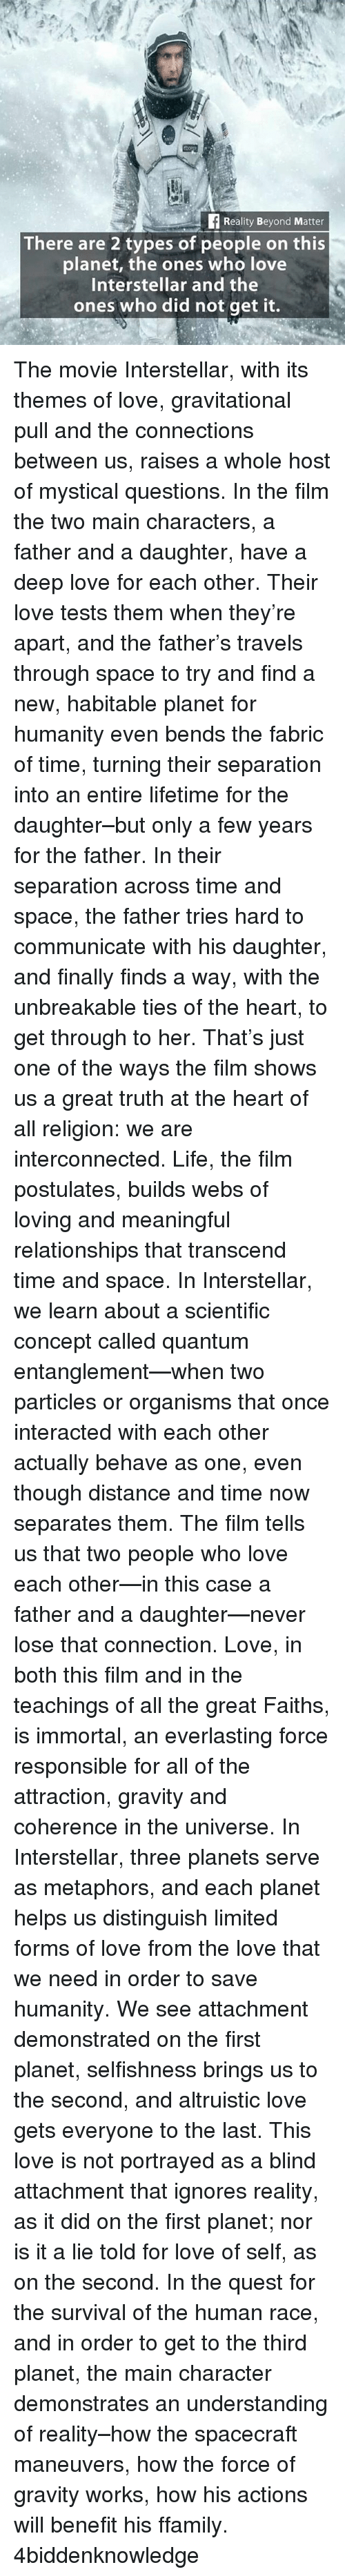 Interstellar, Life, and Love: Reality Beyond Matter  There are 2 types of people on this  planet, the ones who love  Interstellar and the  ones who did not get it. The movie Interstellar, with its themes of love, gravitational pull and the connections between us, raises a whole host of mystical questions. In the film the two main characters, a father and a daughter, have a deep love for each other. Their love tests them when they're apart, and the father's travels through space to try and find a new, habitable planet for humanity even bends the fabric of time, turning their separation into an entire lifetime for the daughter–but only a few years for the father. In their separation across time and space, the father tries hard to communicate with his daughter, and finally finds a way, with the unbreakable ties of the heart, to get through to her. That's just one of the ways the film shows us a great truth at the heart of all religion: we are interconnected. Life, the film postulates, builds webs of loving and meaningful relationships that transcend time and space. In Interstellar, we learn about a scientific concept called quantum entanglement—when two particles or organisms that once interacted with each other actually behave as one, even though distance and time now separates them. The film tells us that two people who love each other—in this case a father and a daughter—never lose that connection. Love, in both this film and in the teachings of all the great Faiths, is immortal, an everlasting force responsible for all of the attraction, gravity and coherence in the universe. In Interstellar, three planets serve as metaphors, and each planet helps us distinguish limited forms of love from the love that we need in order to save humanity. We see attachment demonstrated on the first planet, selfishness brings us to the second, and altruistic love gets everyone to the last. This love is not portrayed as a blind attachment that ignores reality, as it did on the first pl